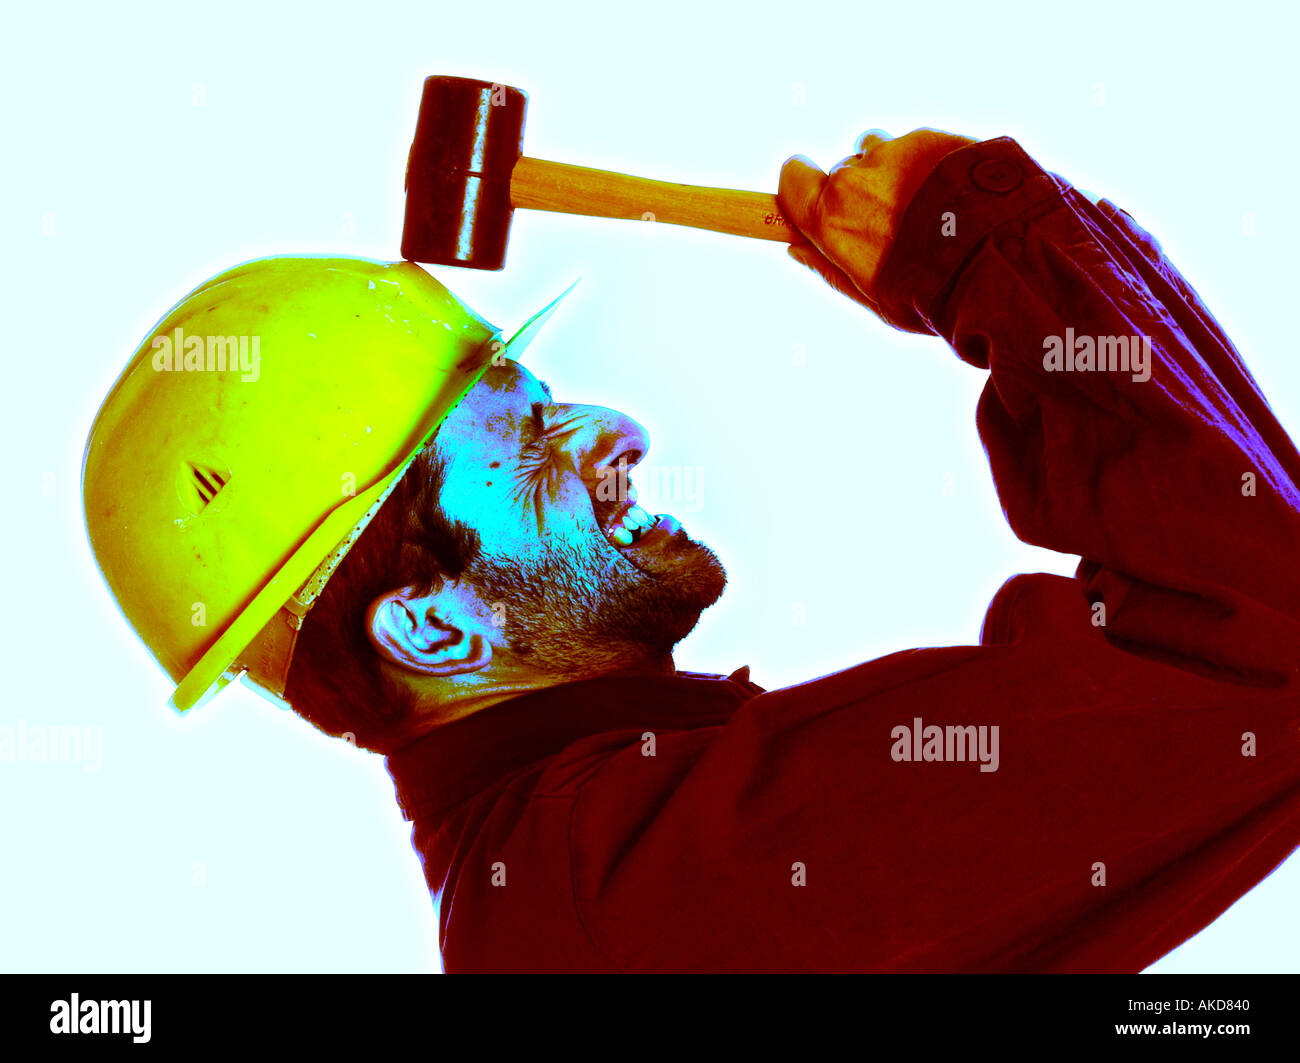 Construction Worker With Hammer Anger Symbol For Pressure Stock